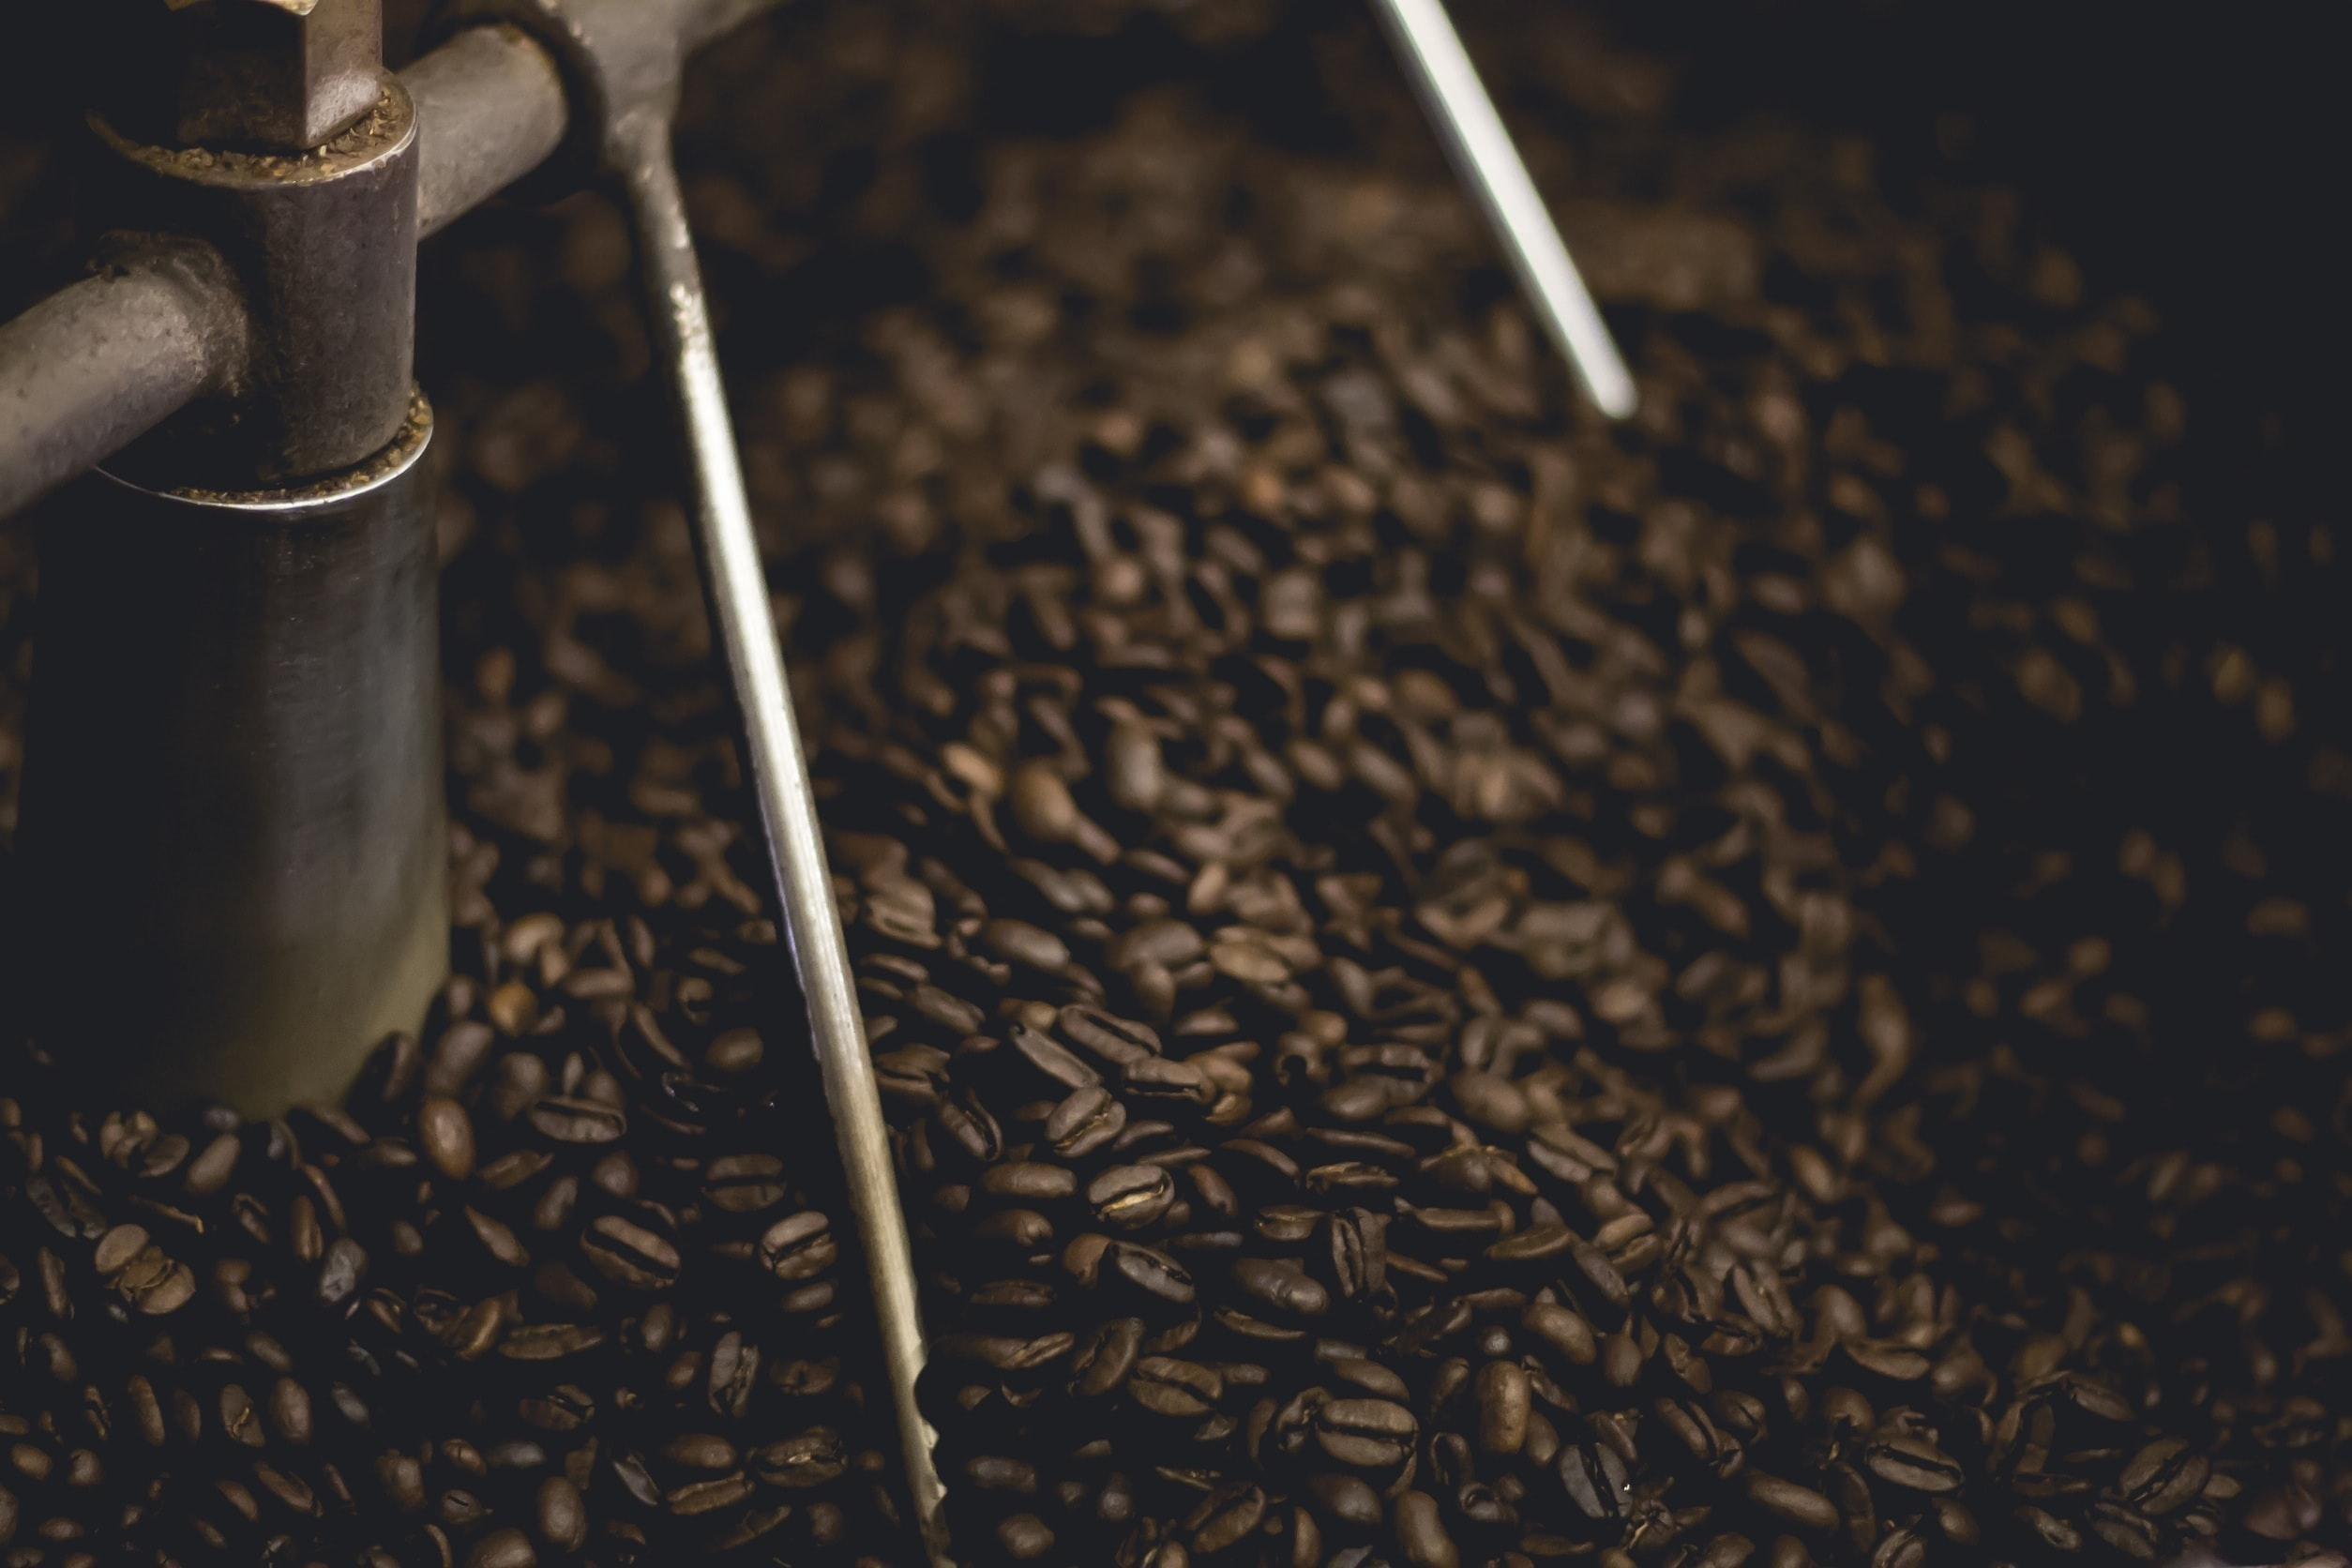 Large amount of whole brown coffee beans in a metal machine